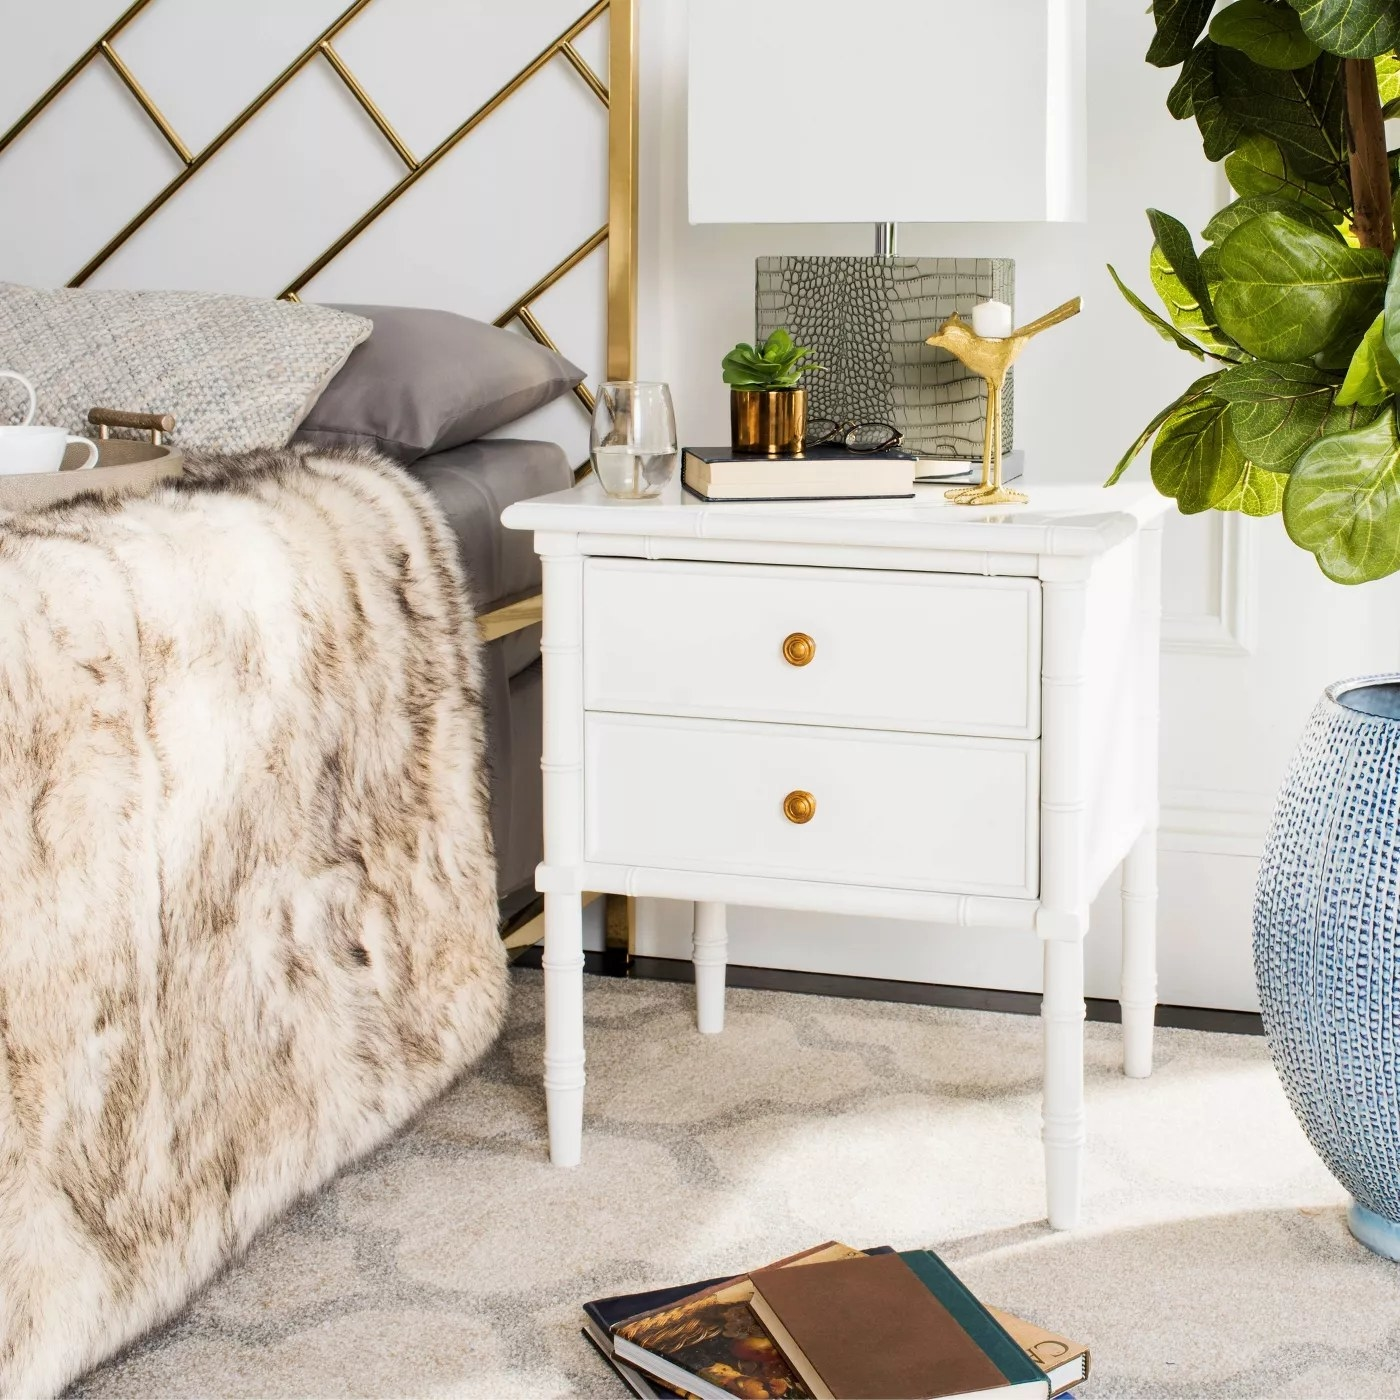 The white nightstand with gold handles